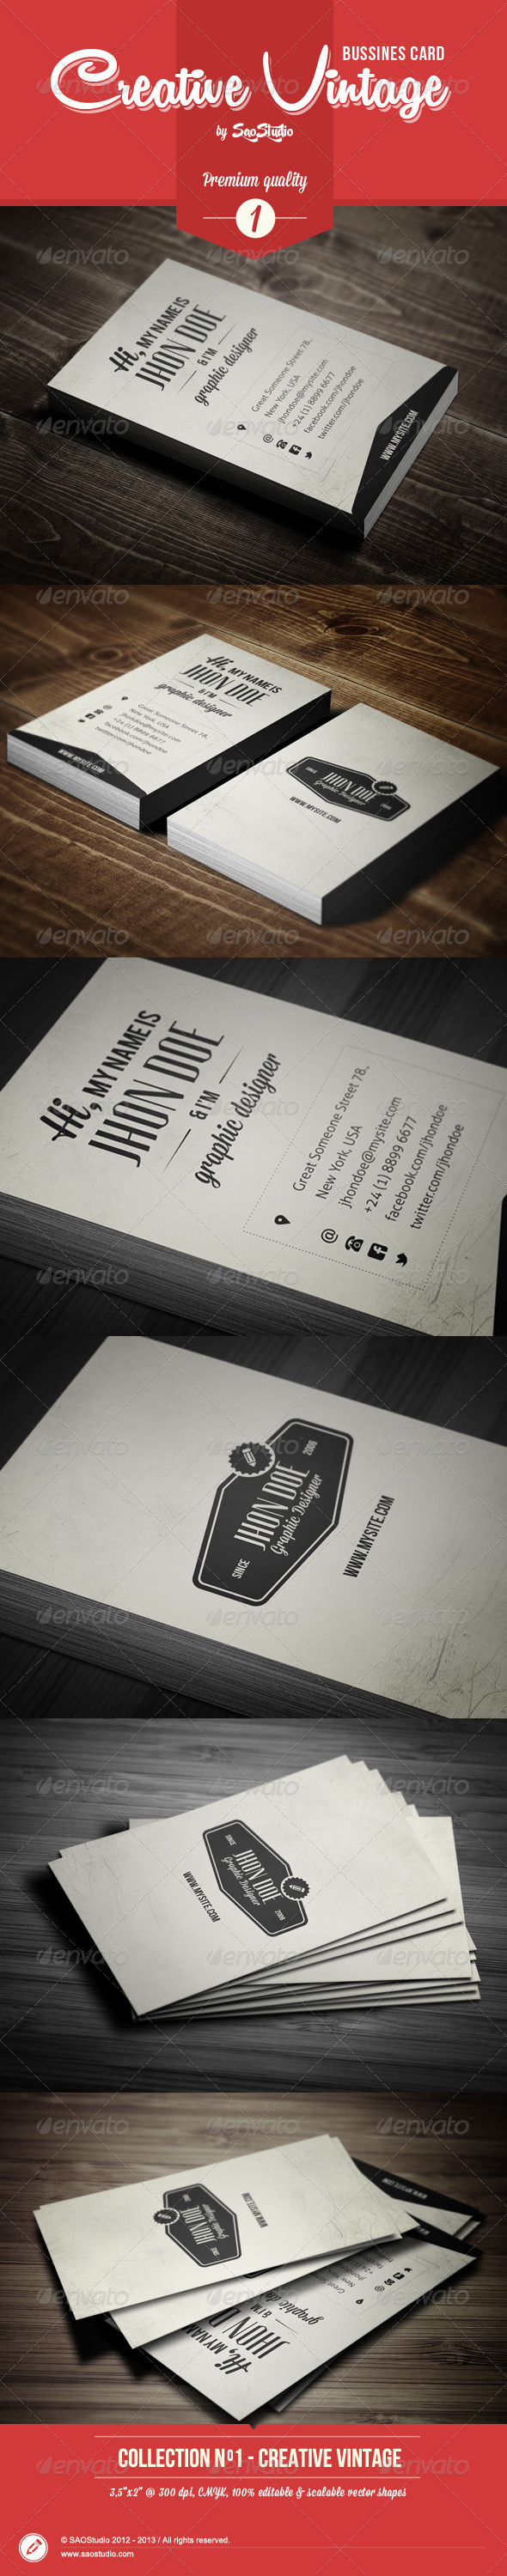 Premium Creative Vintage Bussines Card - Retro/Vintage Business Cards